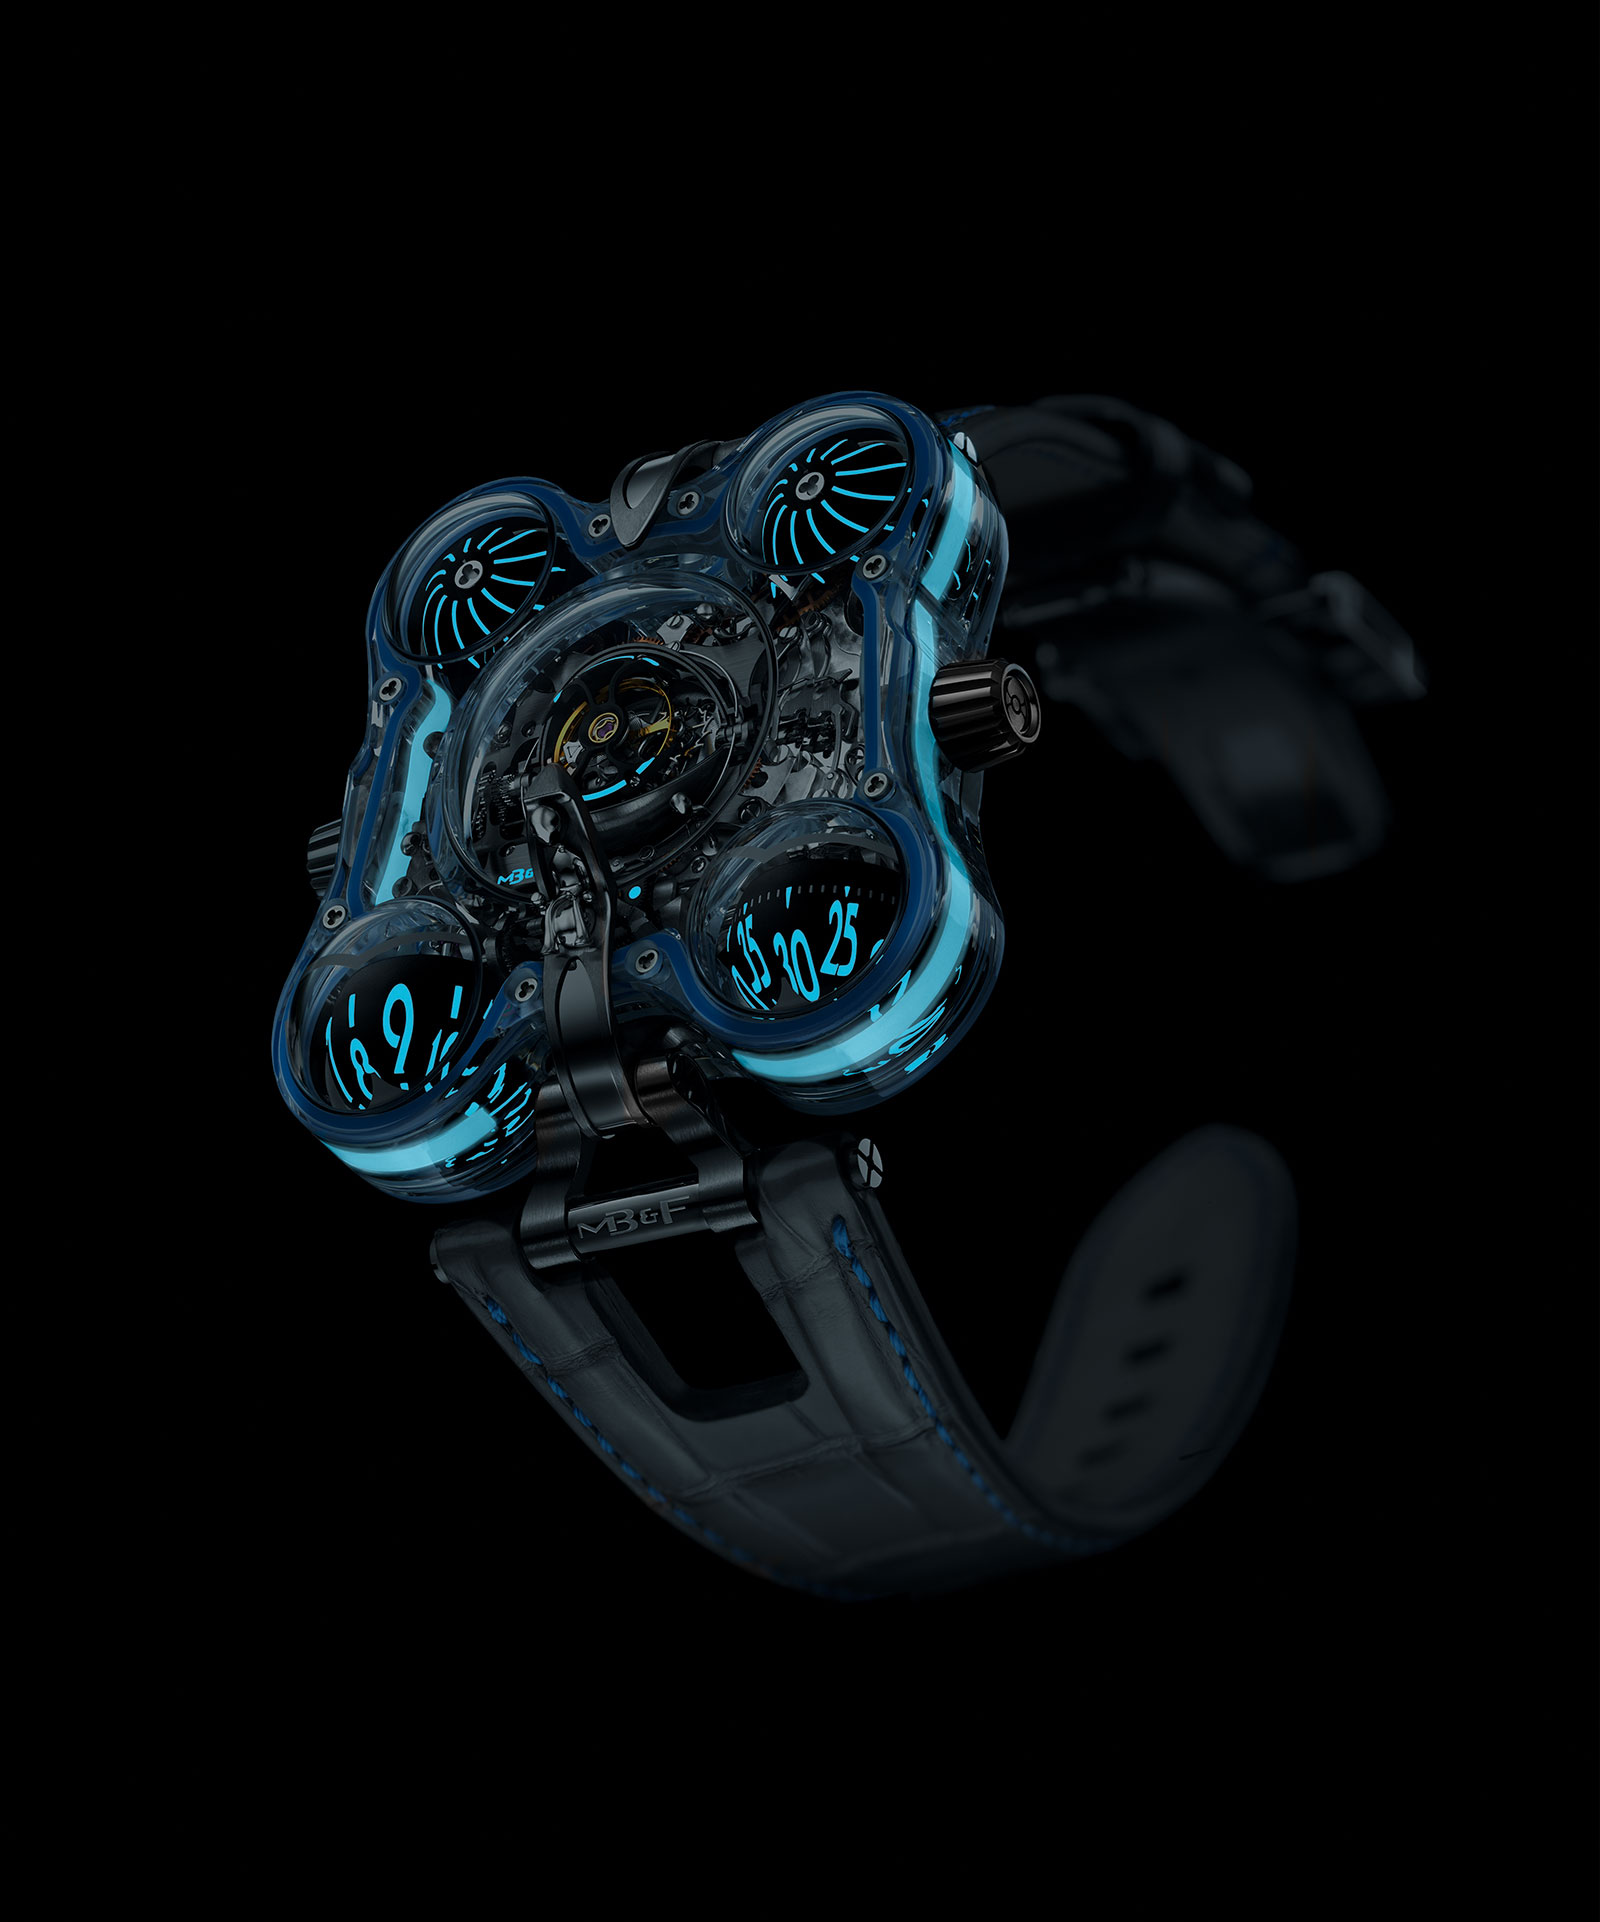 MB&F HM6 Alien Nation 6